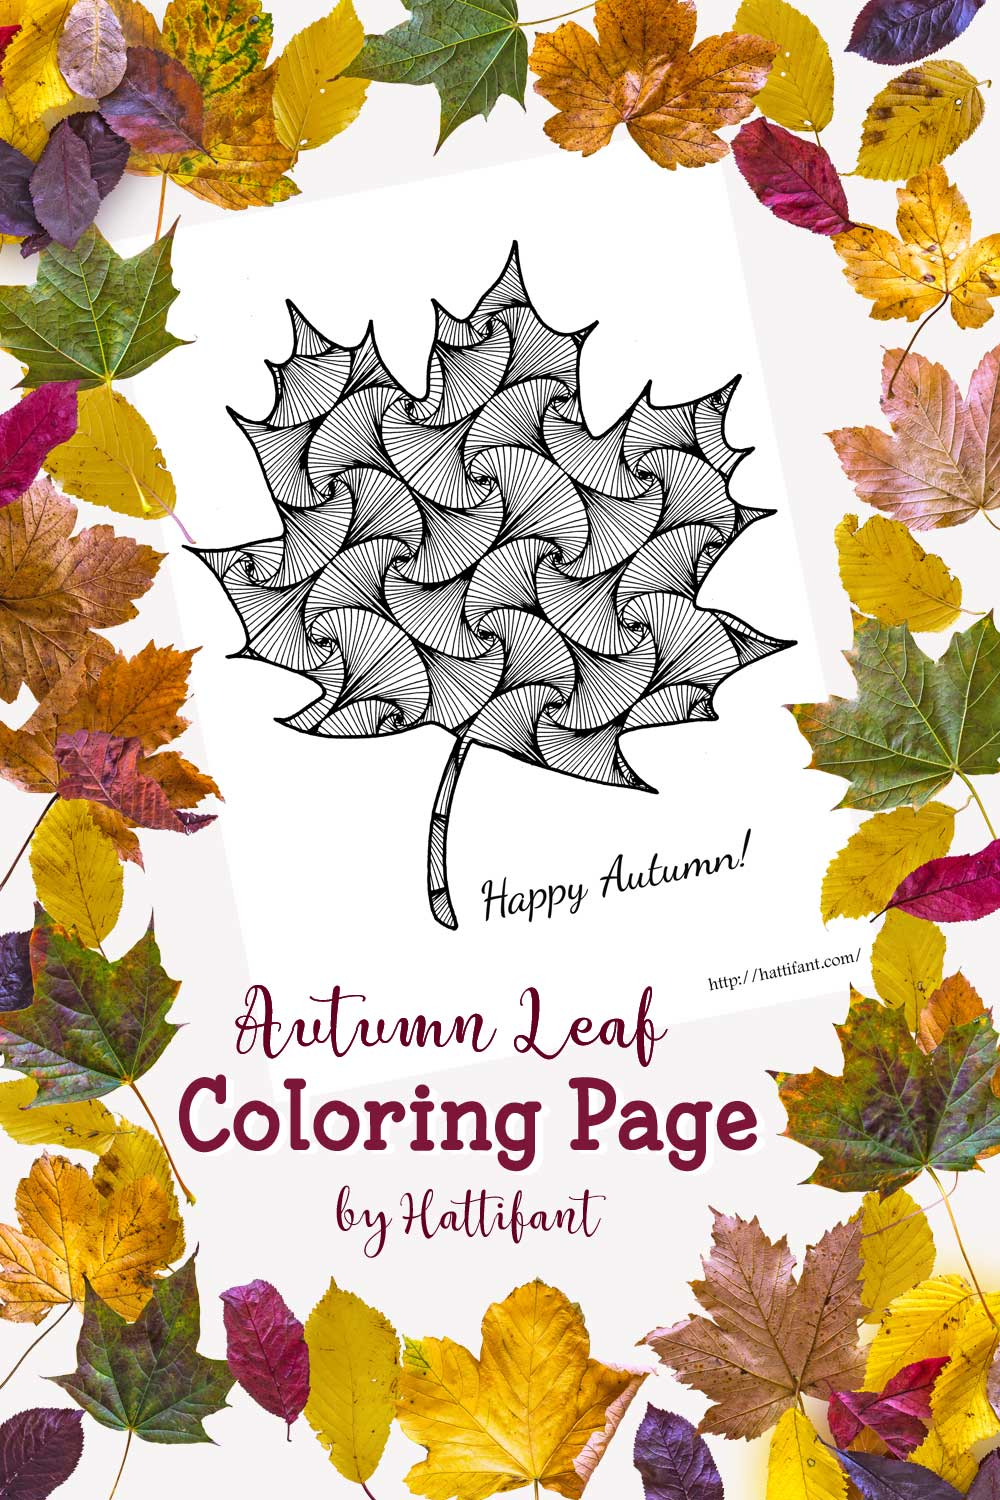 Autumn Leaf Coloring Page - Hattifant